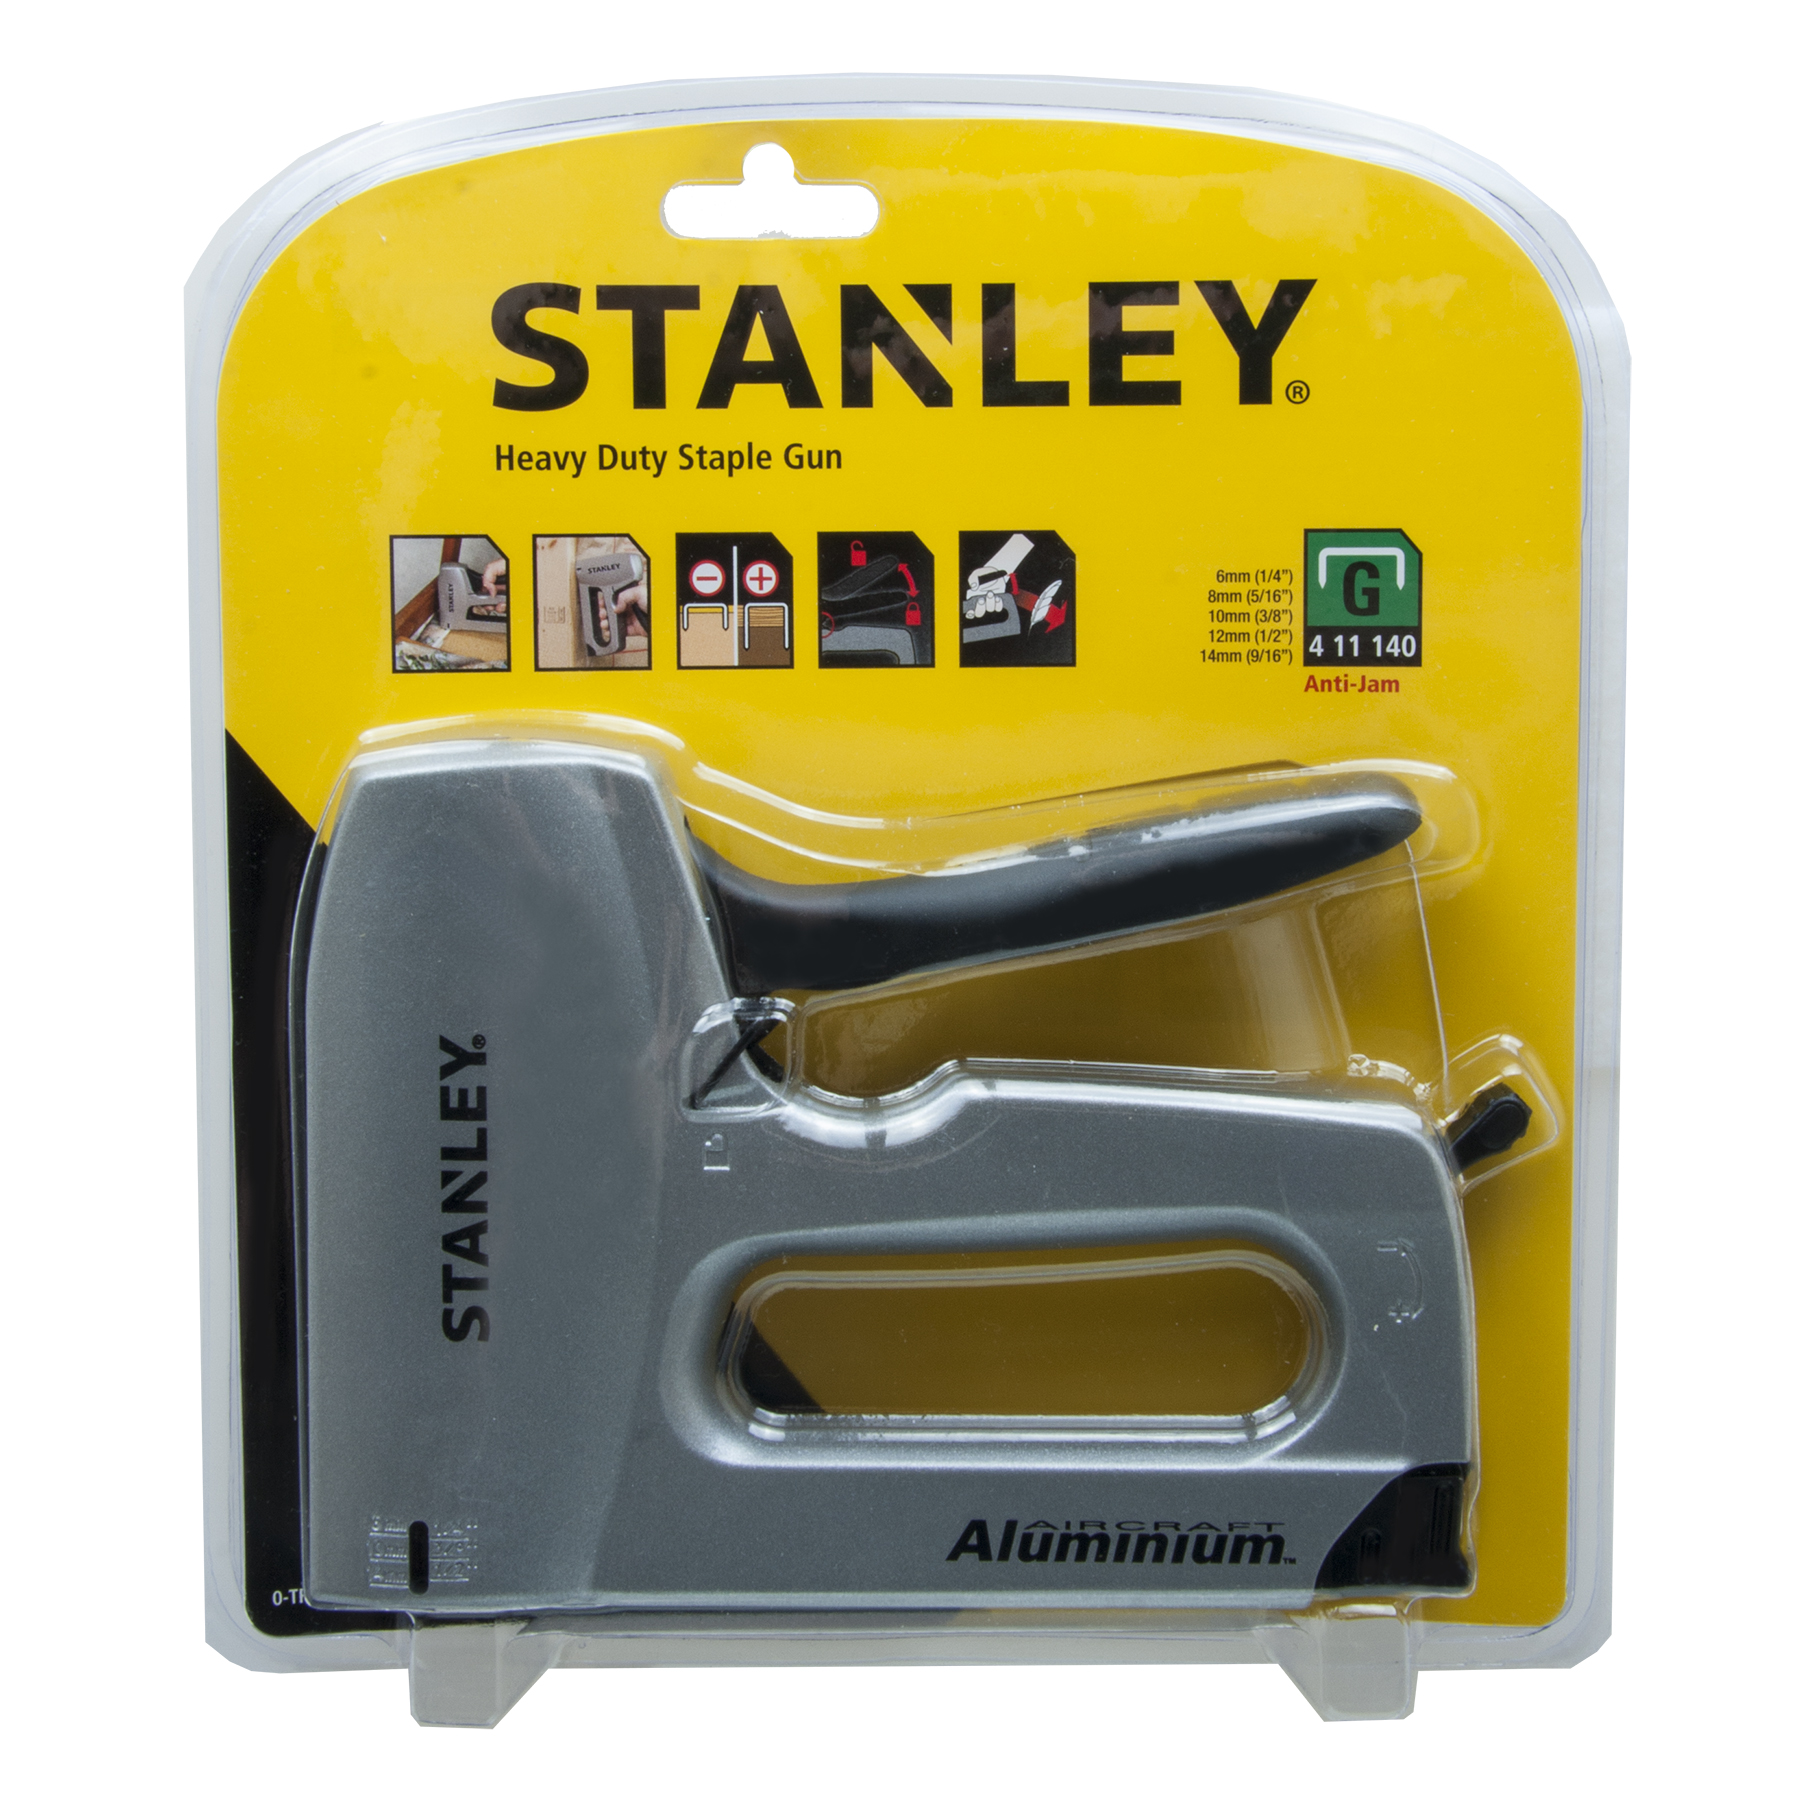 stanley 0tr150hl heavy duty staple gun with 8mm staples thumbnail 4